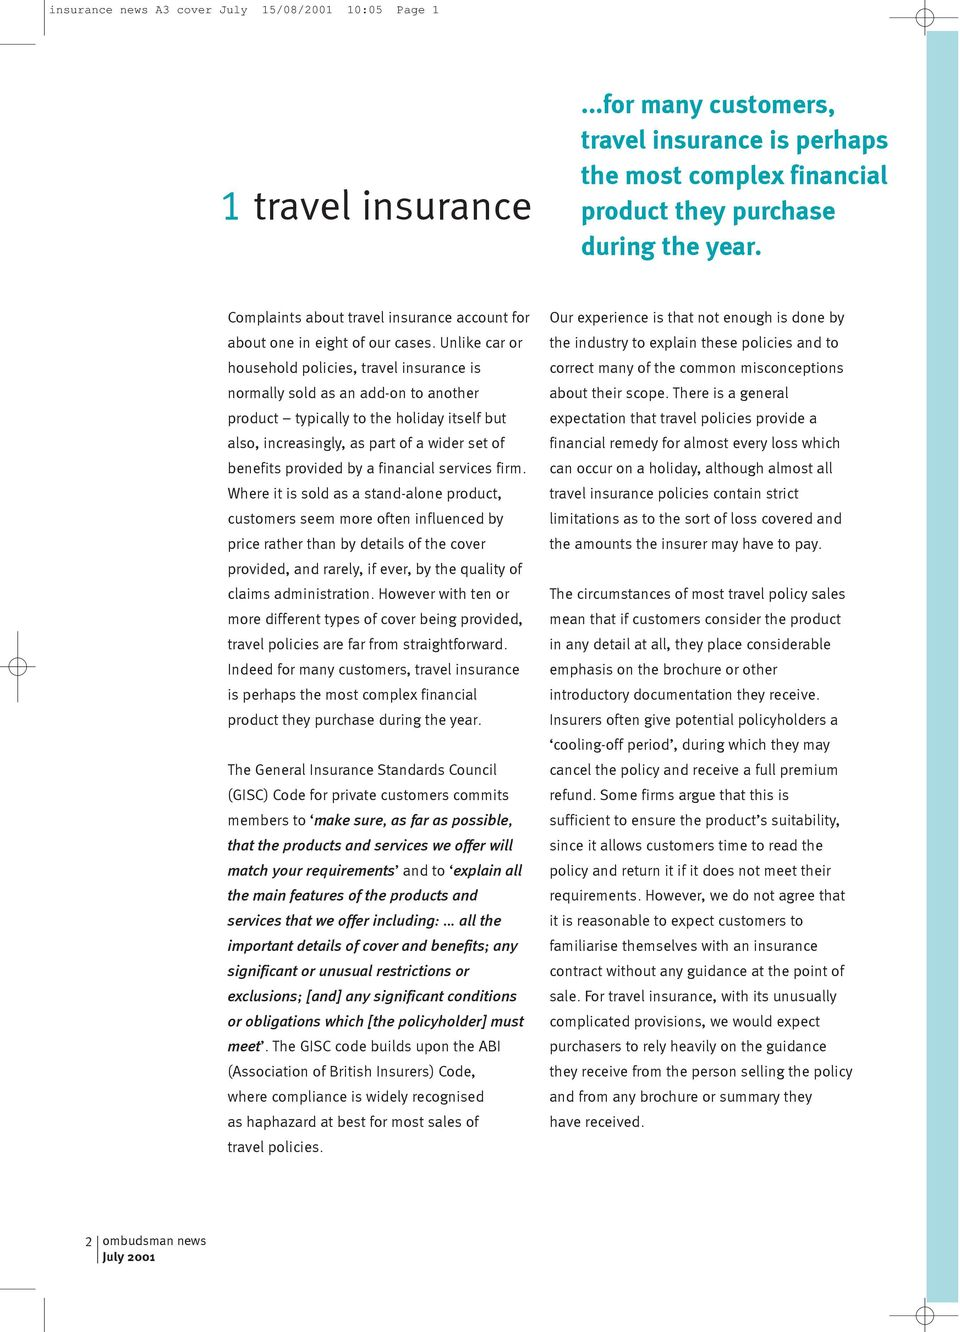 Unlike car or household policies, travel insurance is normally sold as an add-on to another product typically to the holiday itself but also, increasingly, as part of a wider set of benefits provided